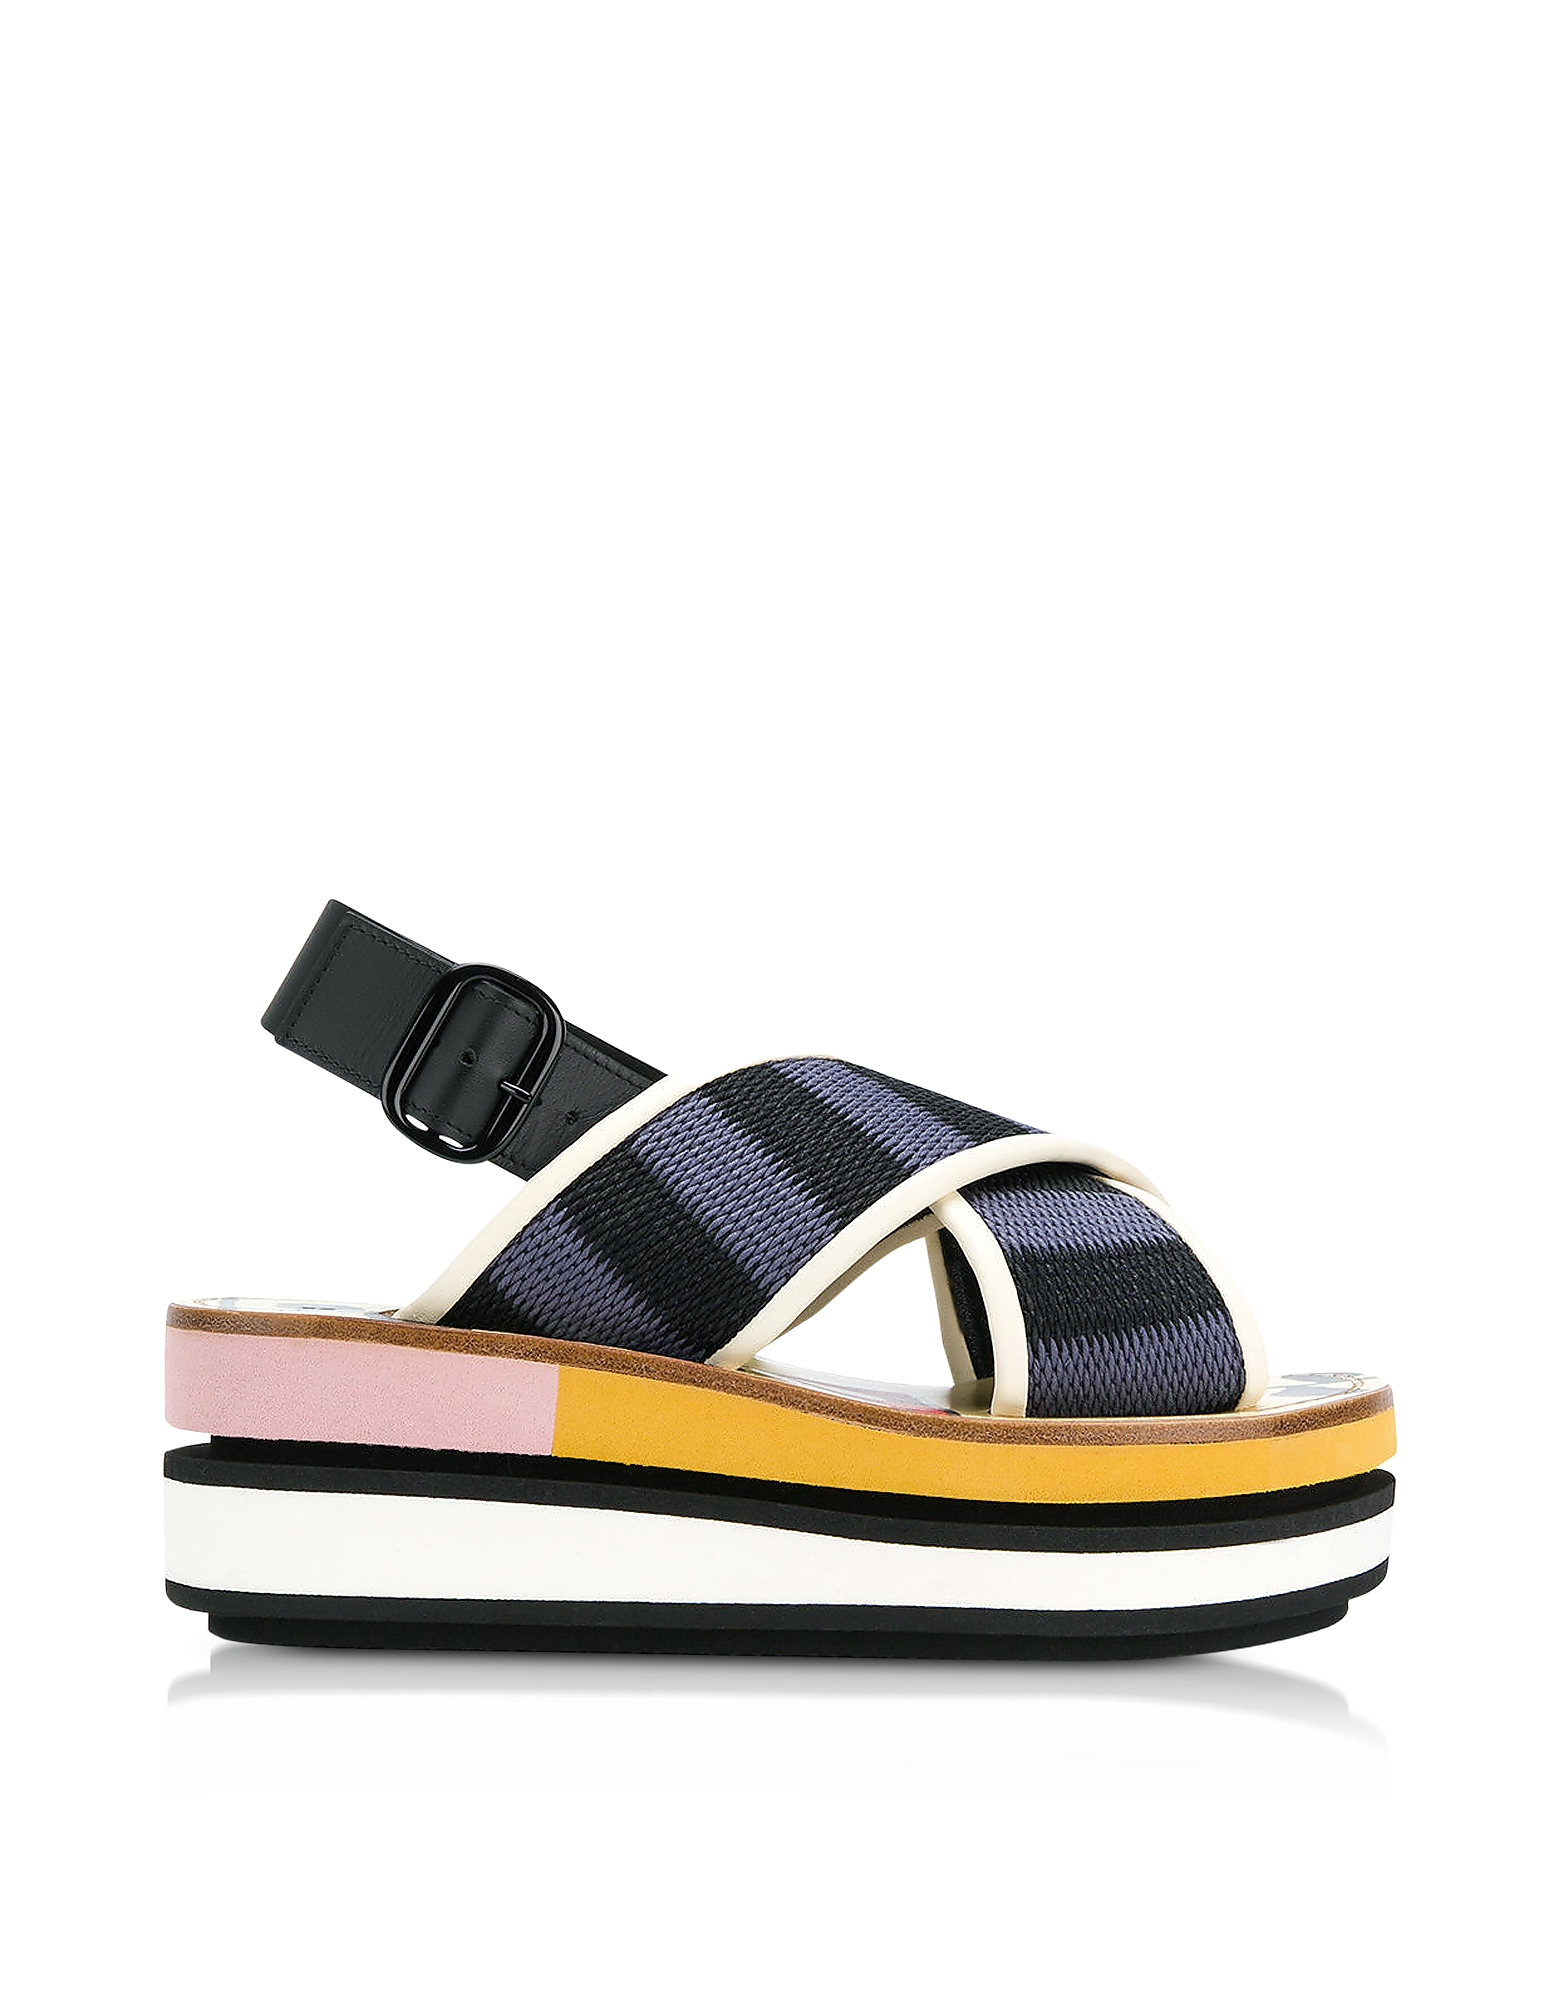 Marni Shoes, Black and Cobalt Blue Cotton Wedge Sandals